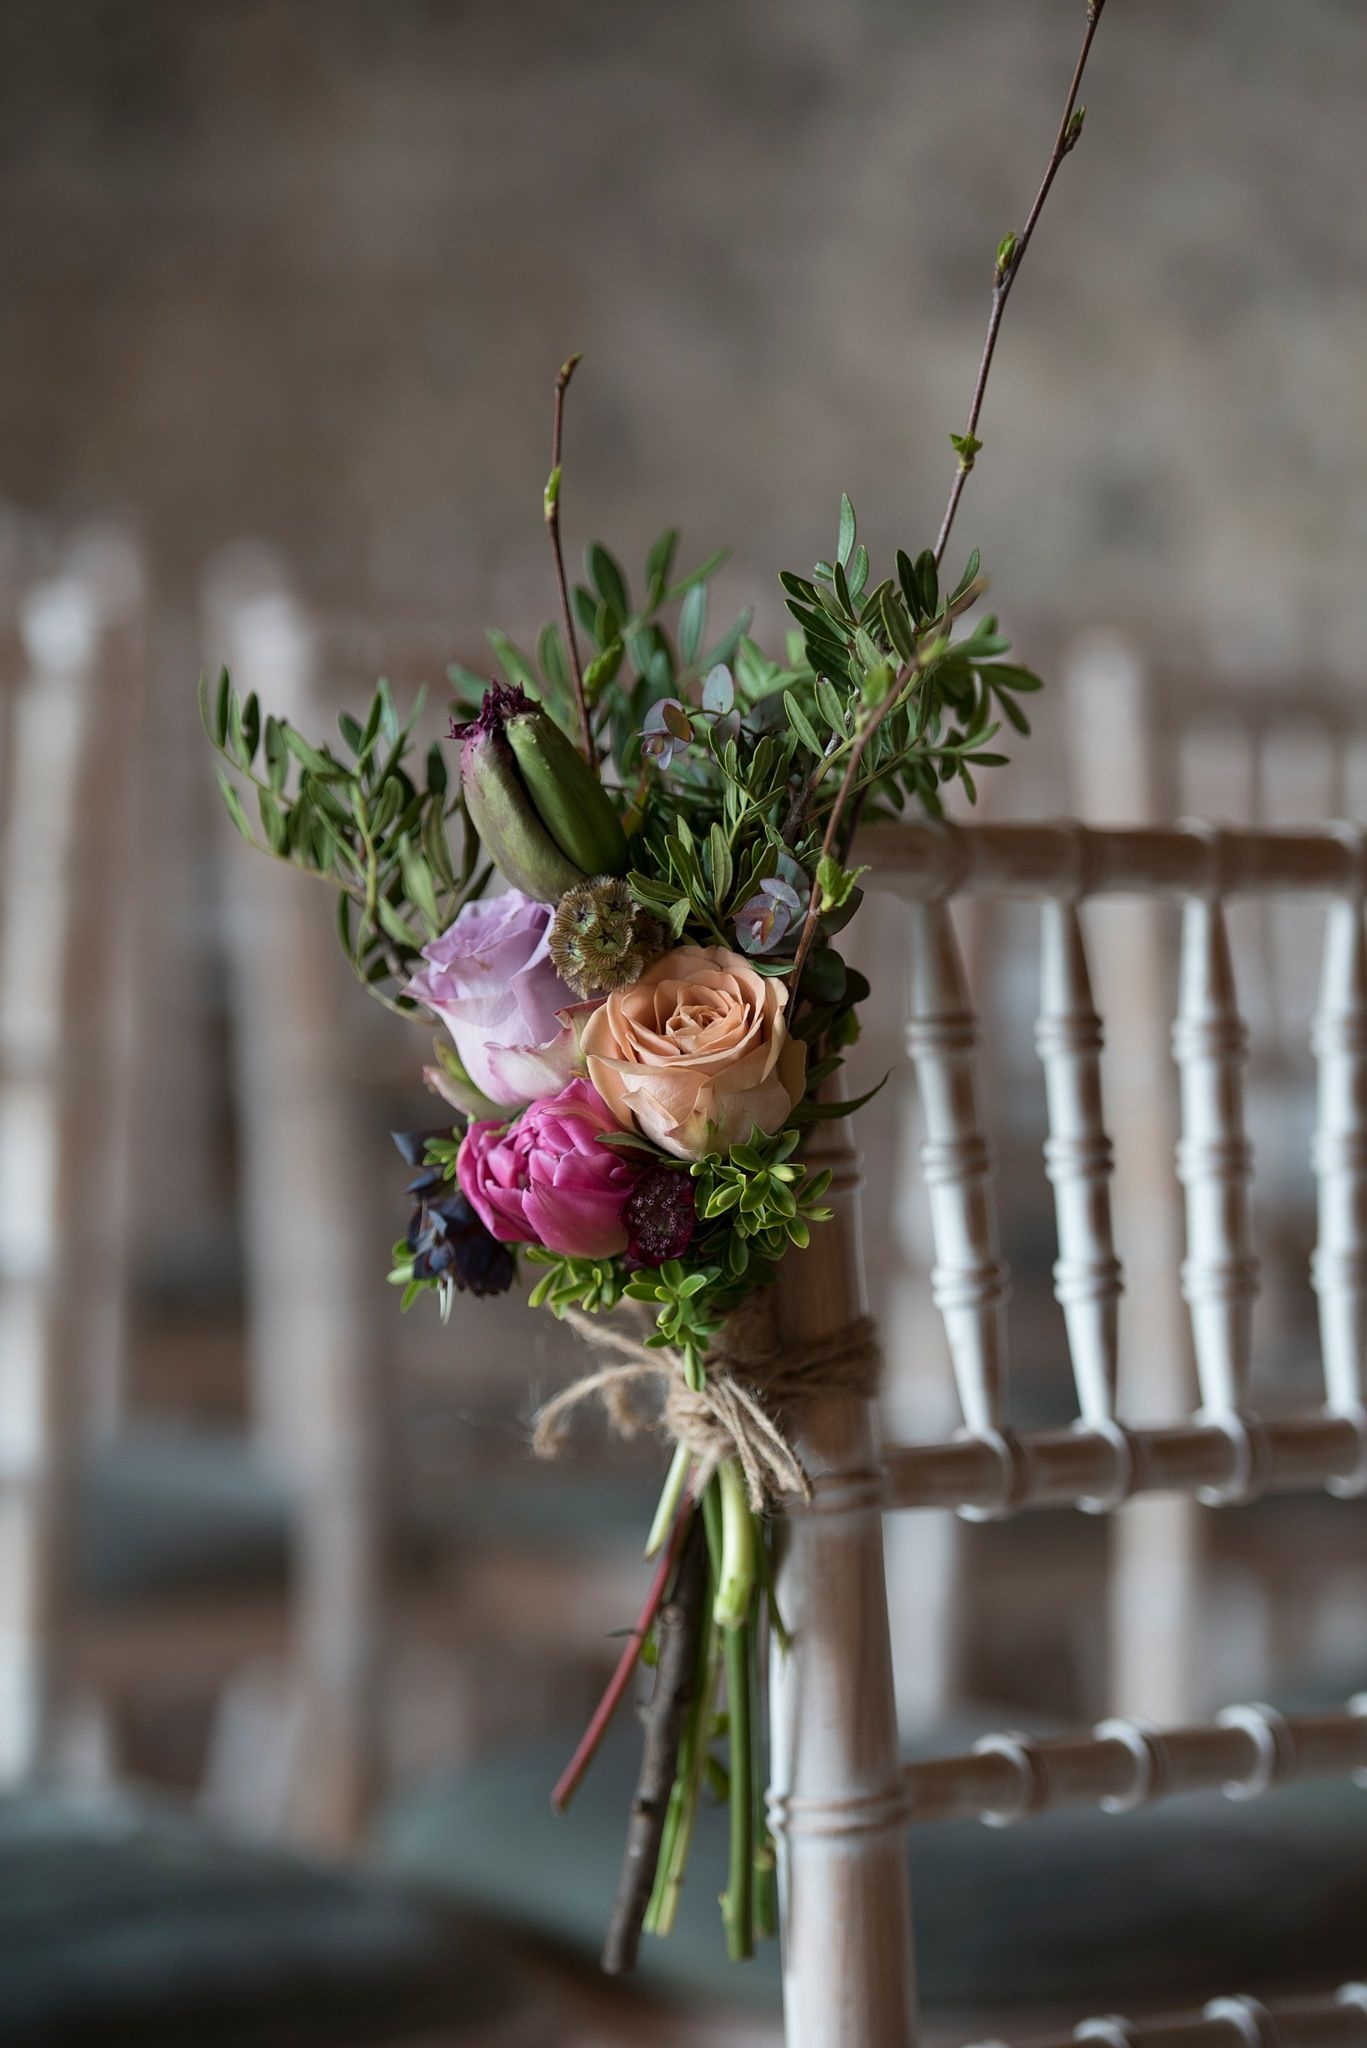 Wedding ceremony chair - Wedding Ceremony Chair Flowers Image Created By Simon Buck Photography